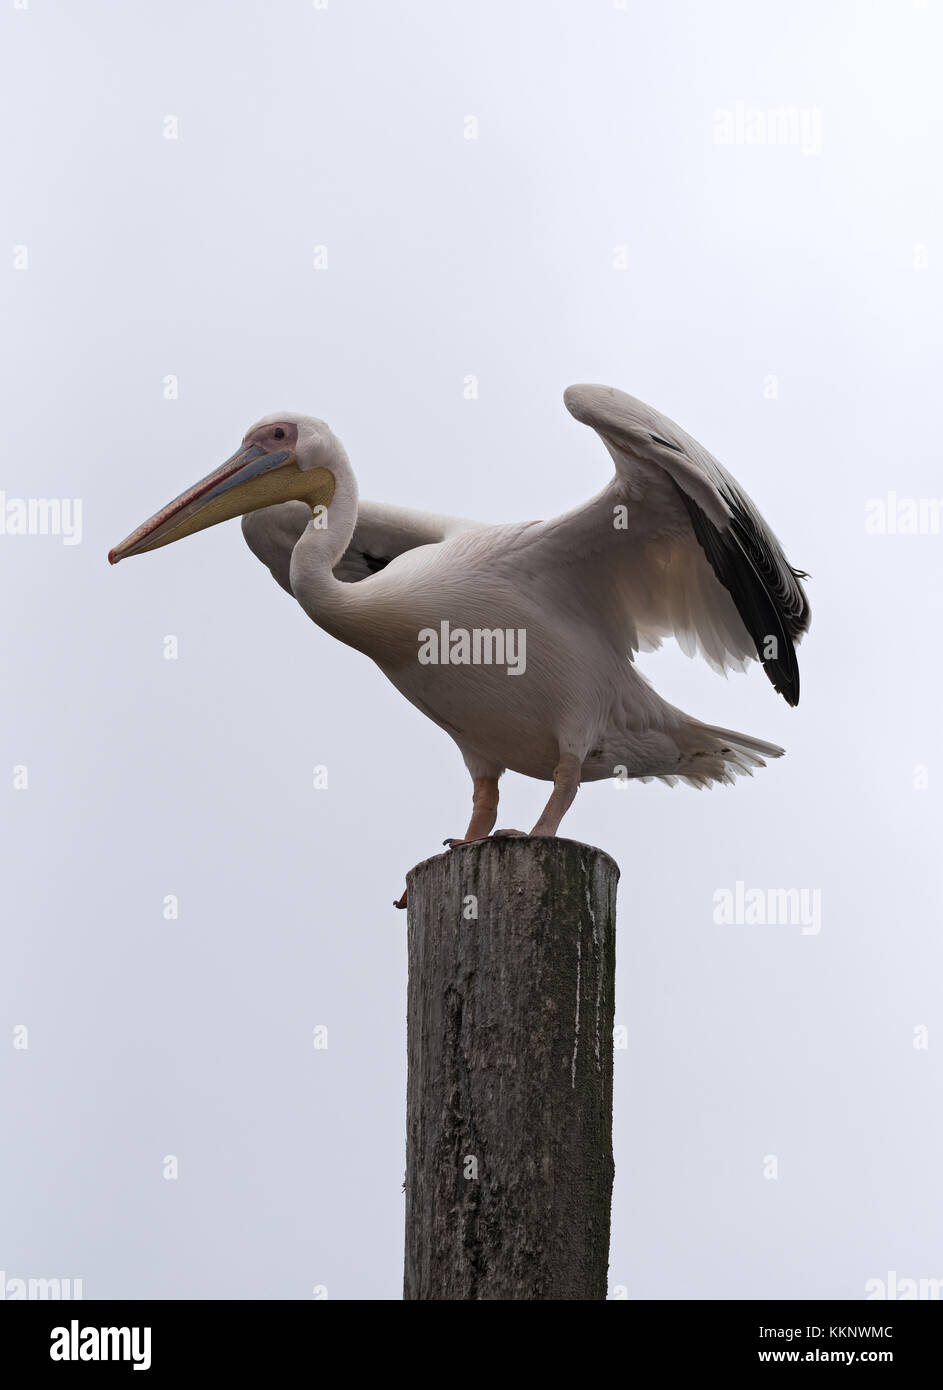 Great White Pelican on a post in Walvis Bay, Namibia - Stock Image